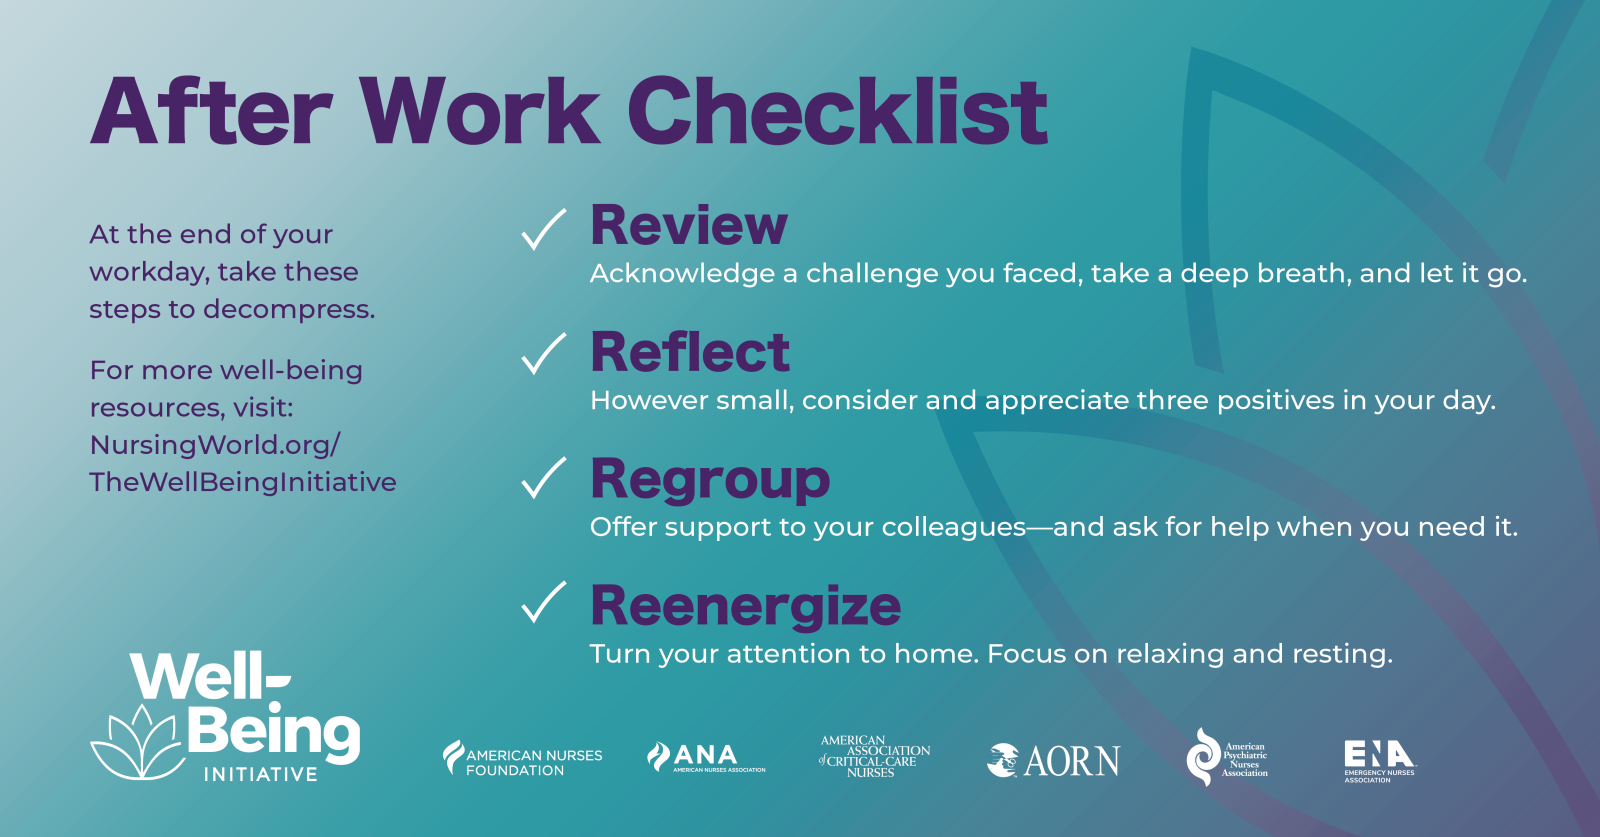 WBI After Work Checklist Sharegraphic Final.png